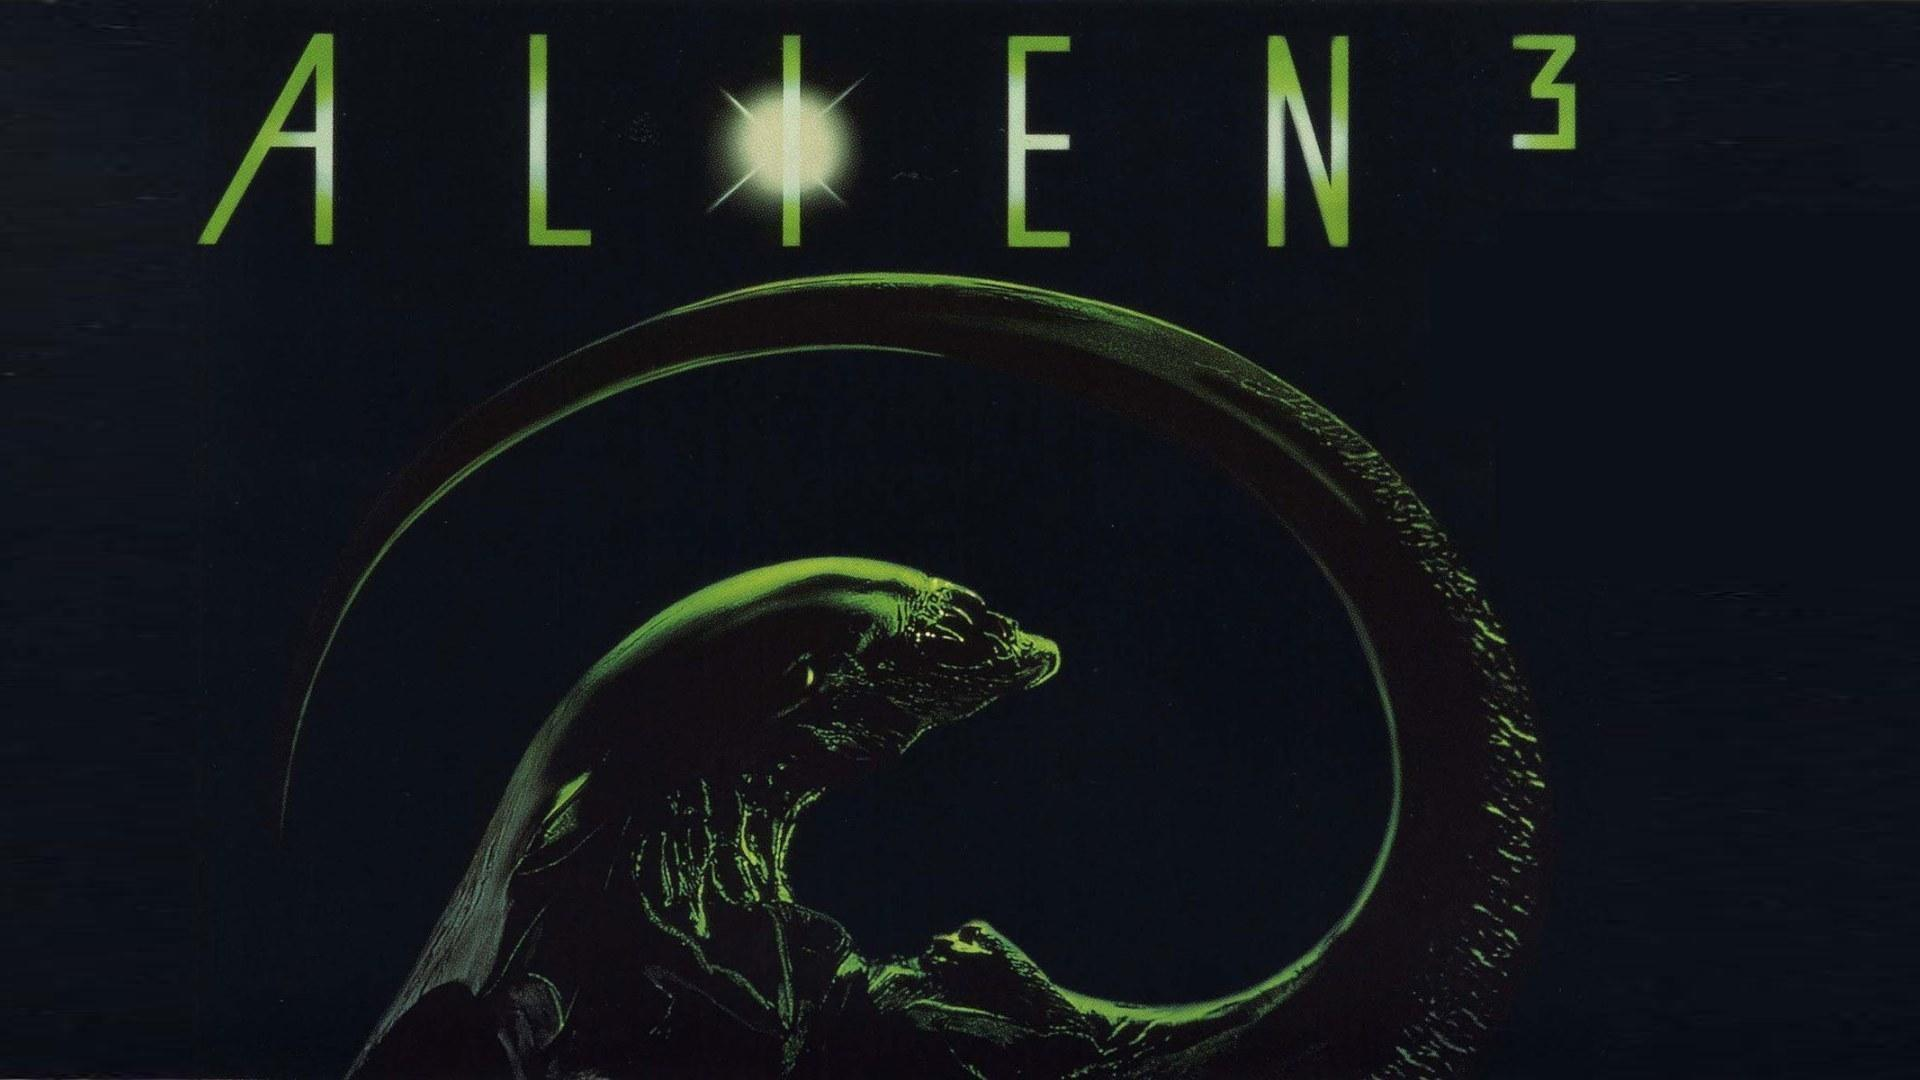 Alien 3 Wallpapers HD Download 1920x1080